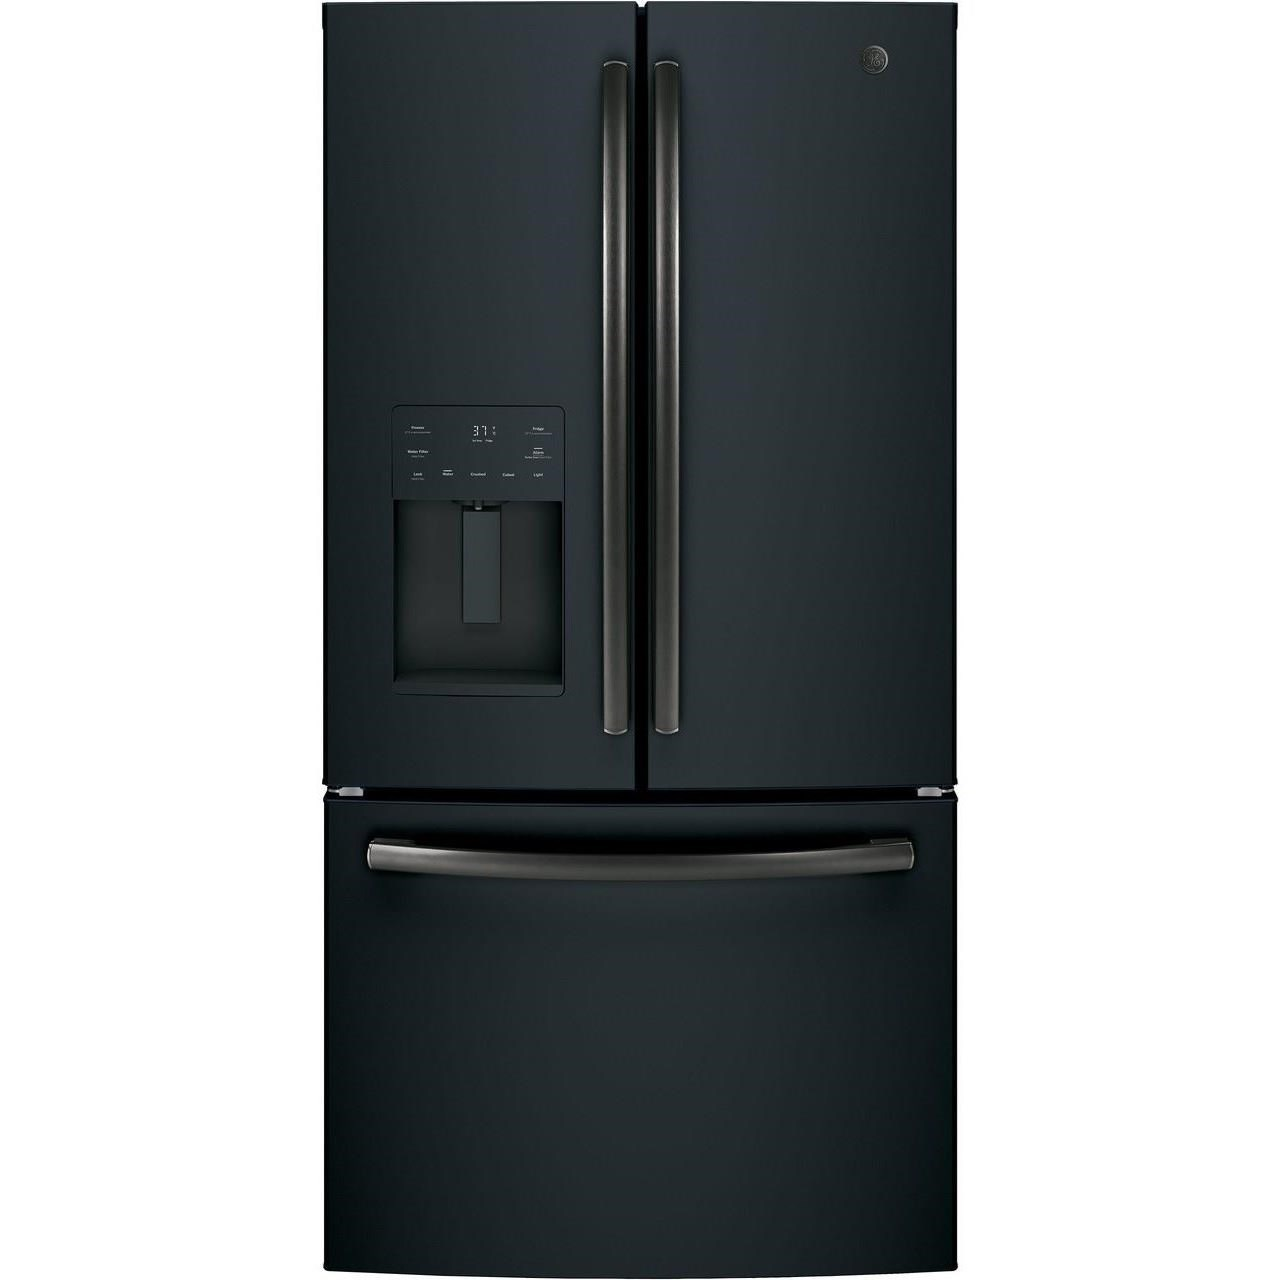 GE French Door Refrigerators GE® ENERGY STAR® 25.6 Cu. Ft. French-Door Re by GE Appliances at Furniture and ApplianceMart